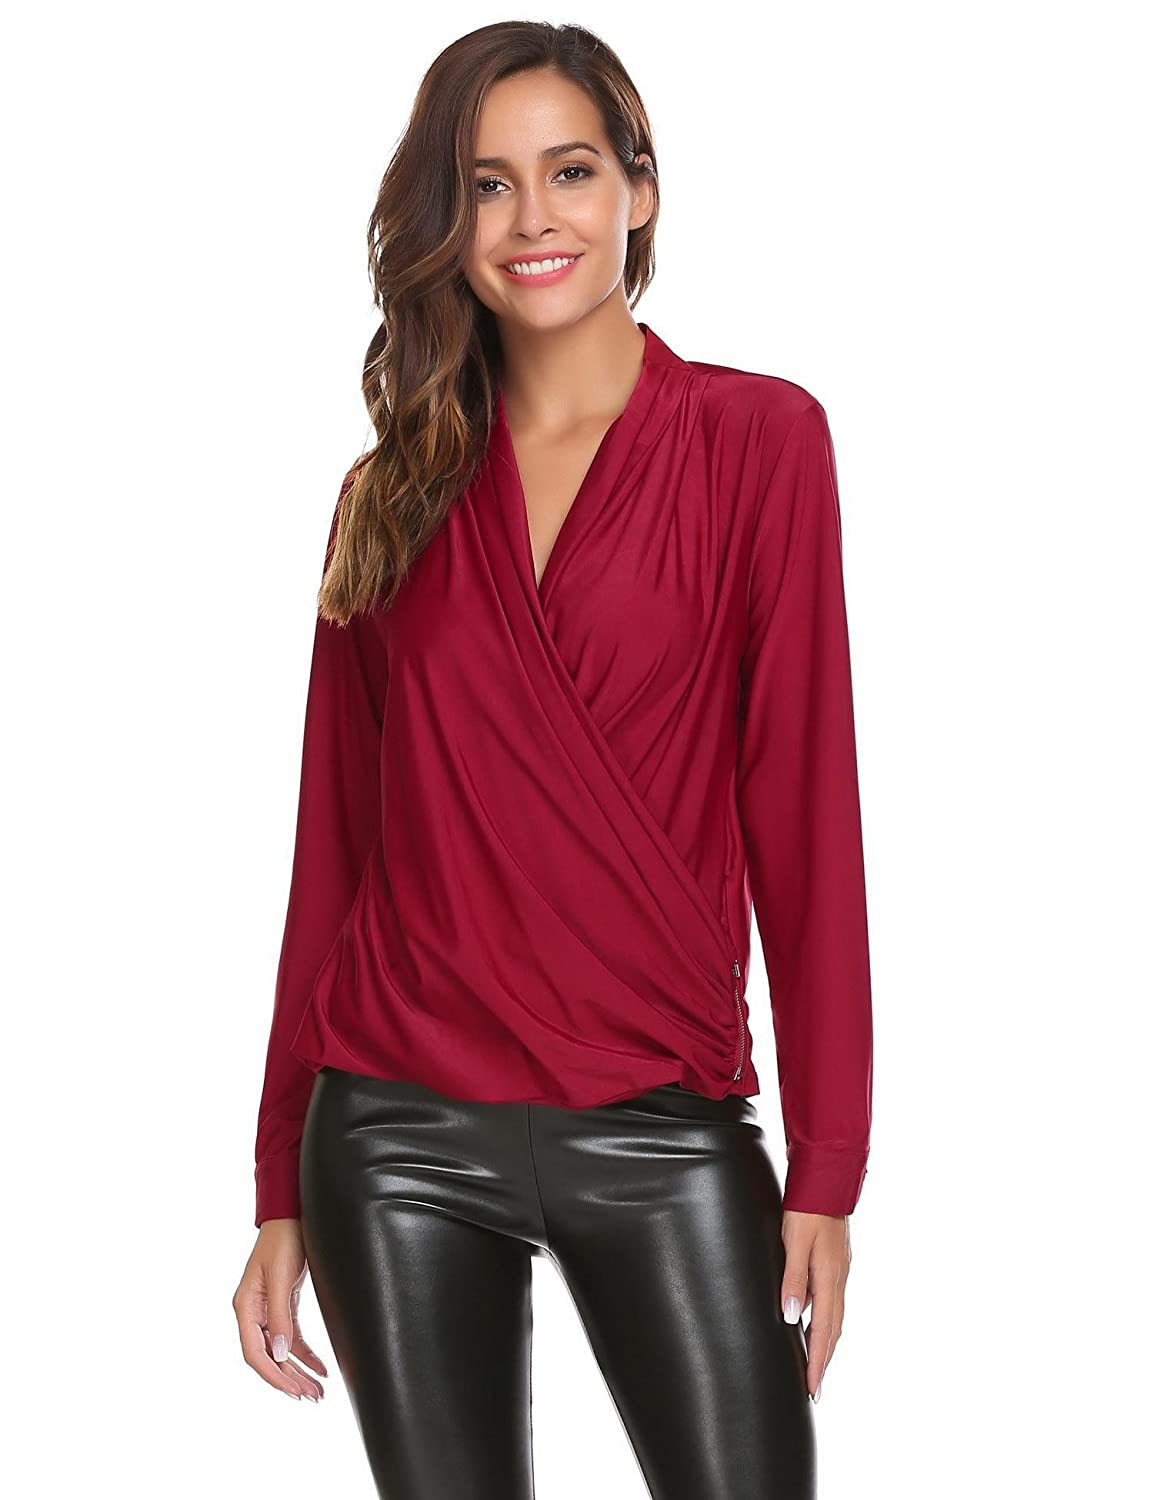 6e3e975c Soft and comfortable fabrics, solid color, deep V-Neck, wrap front  surplicewith shirring detail, intersect in the front bottom.